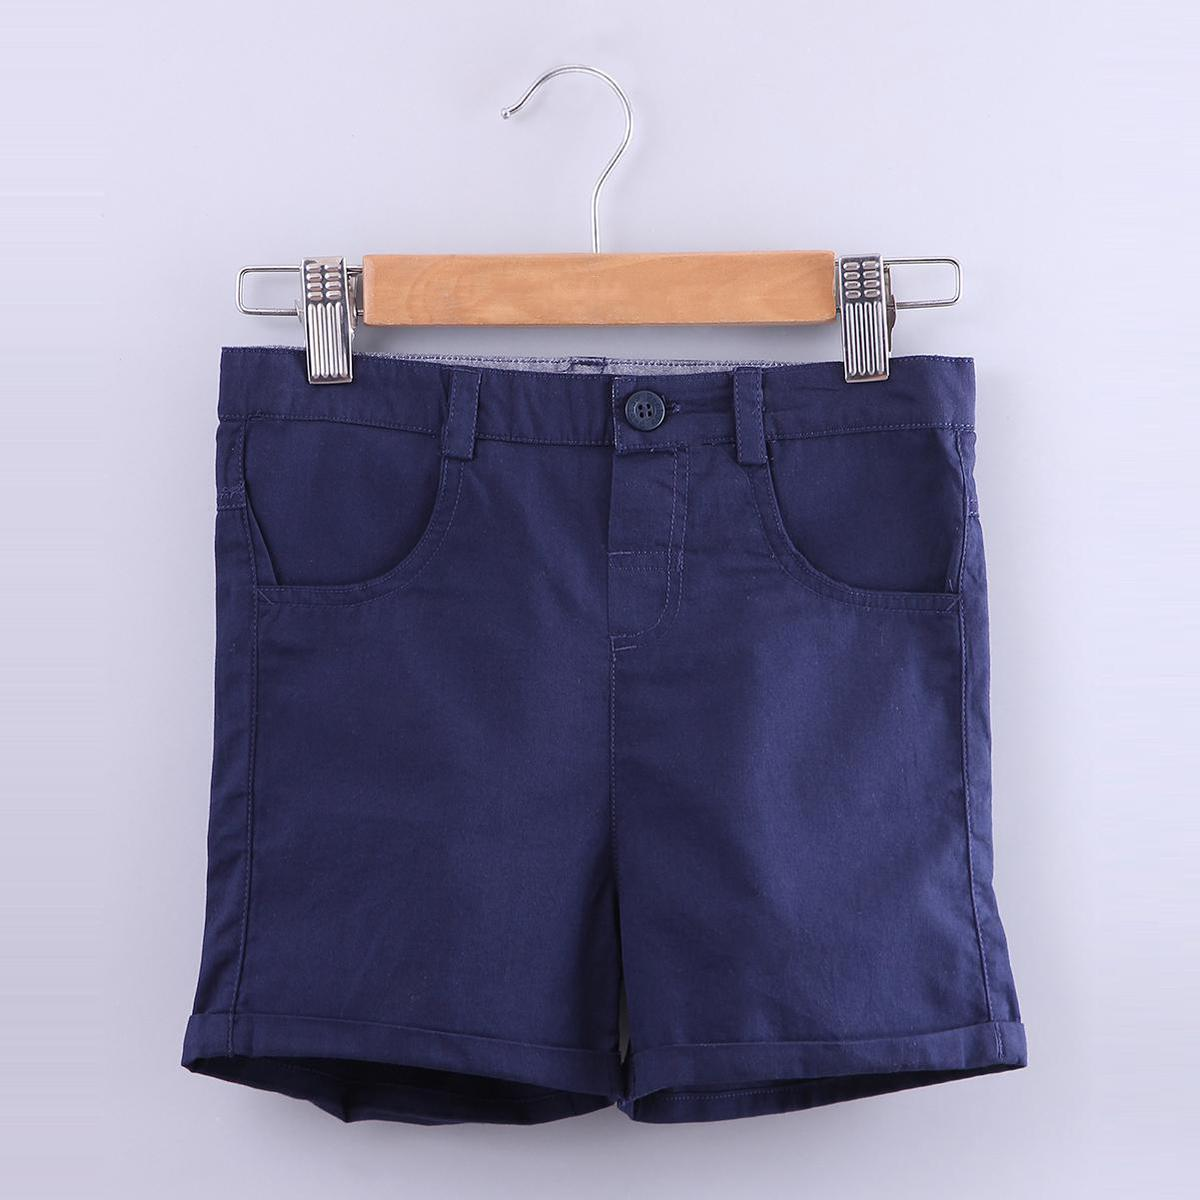 Beebay - Navy Colored Twilight Twill Chinos Cotton Shorts For Boys